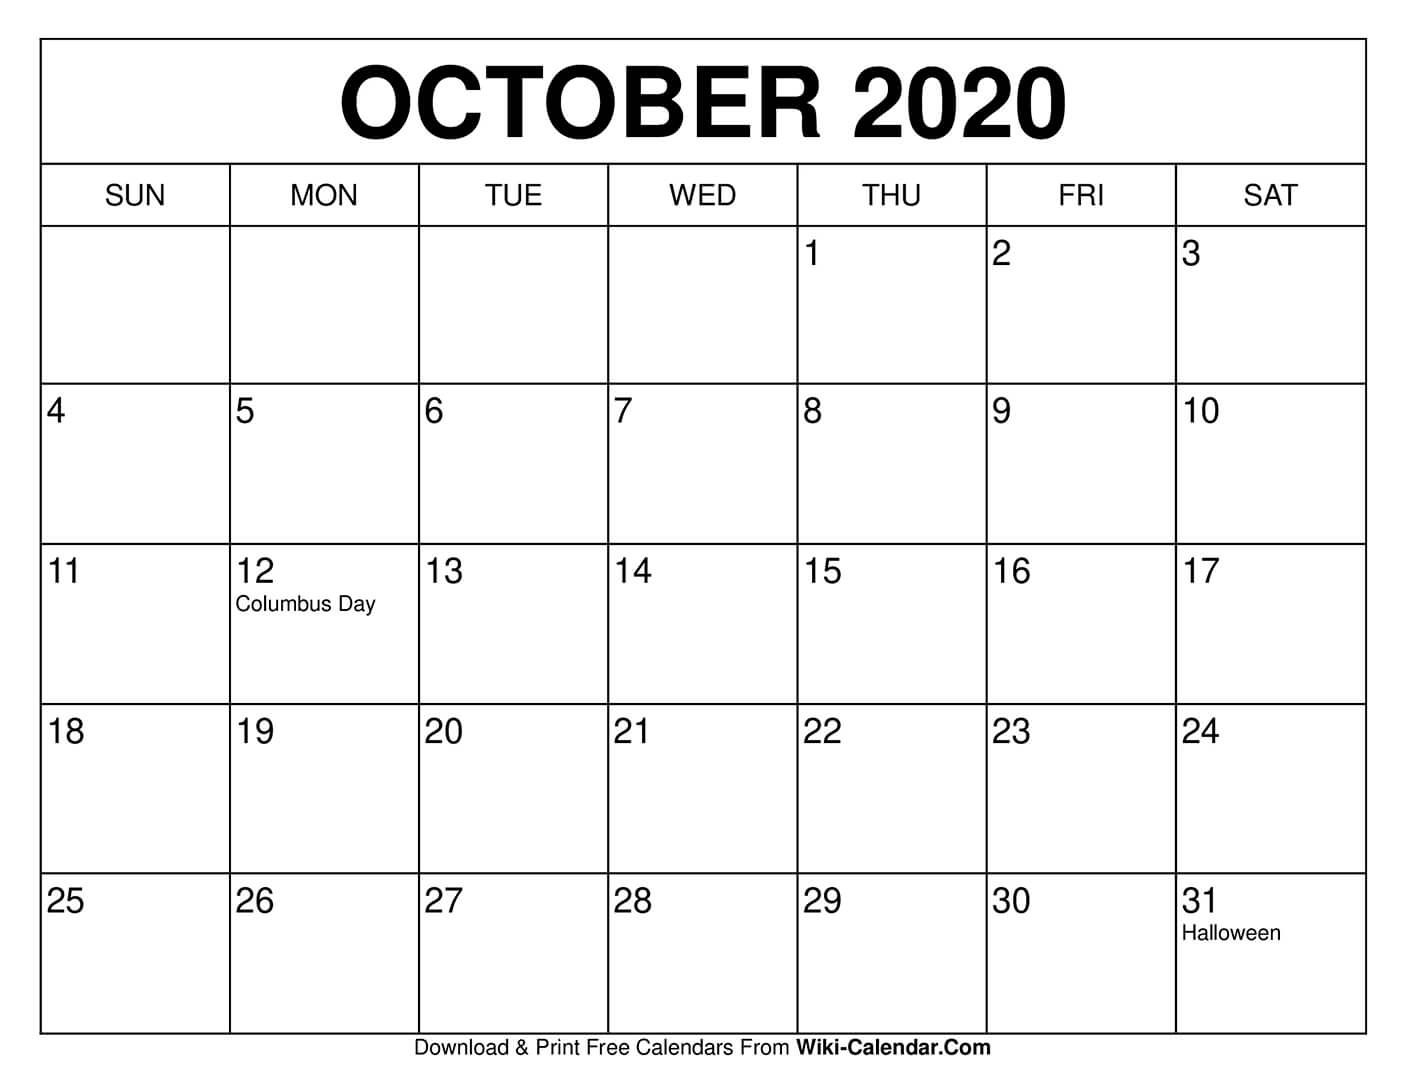 Free Printable October 2020 Calendar Templates These Free